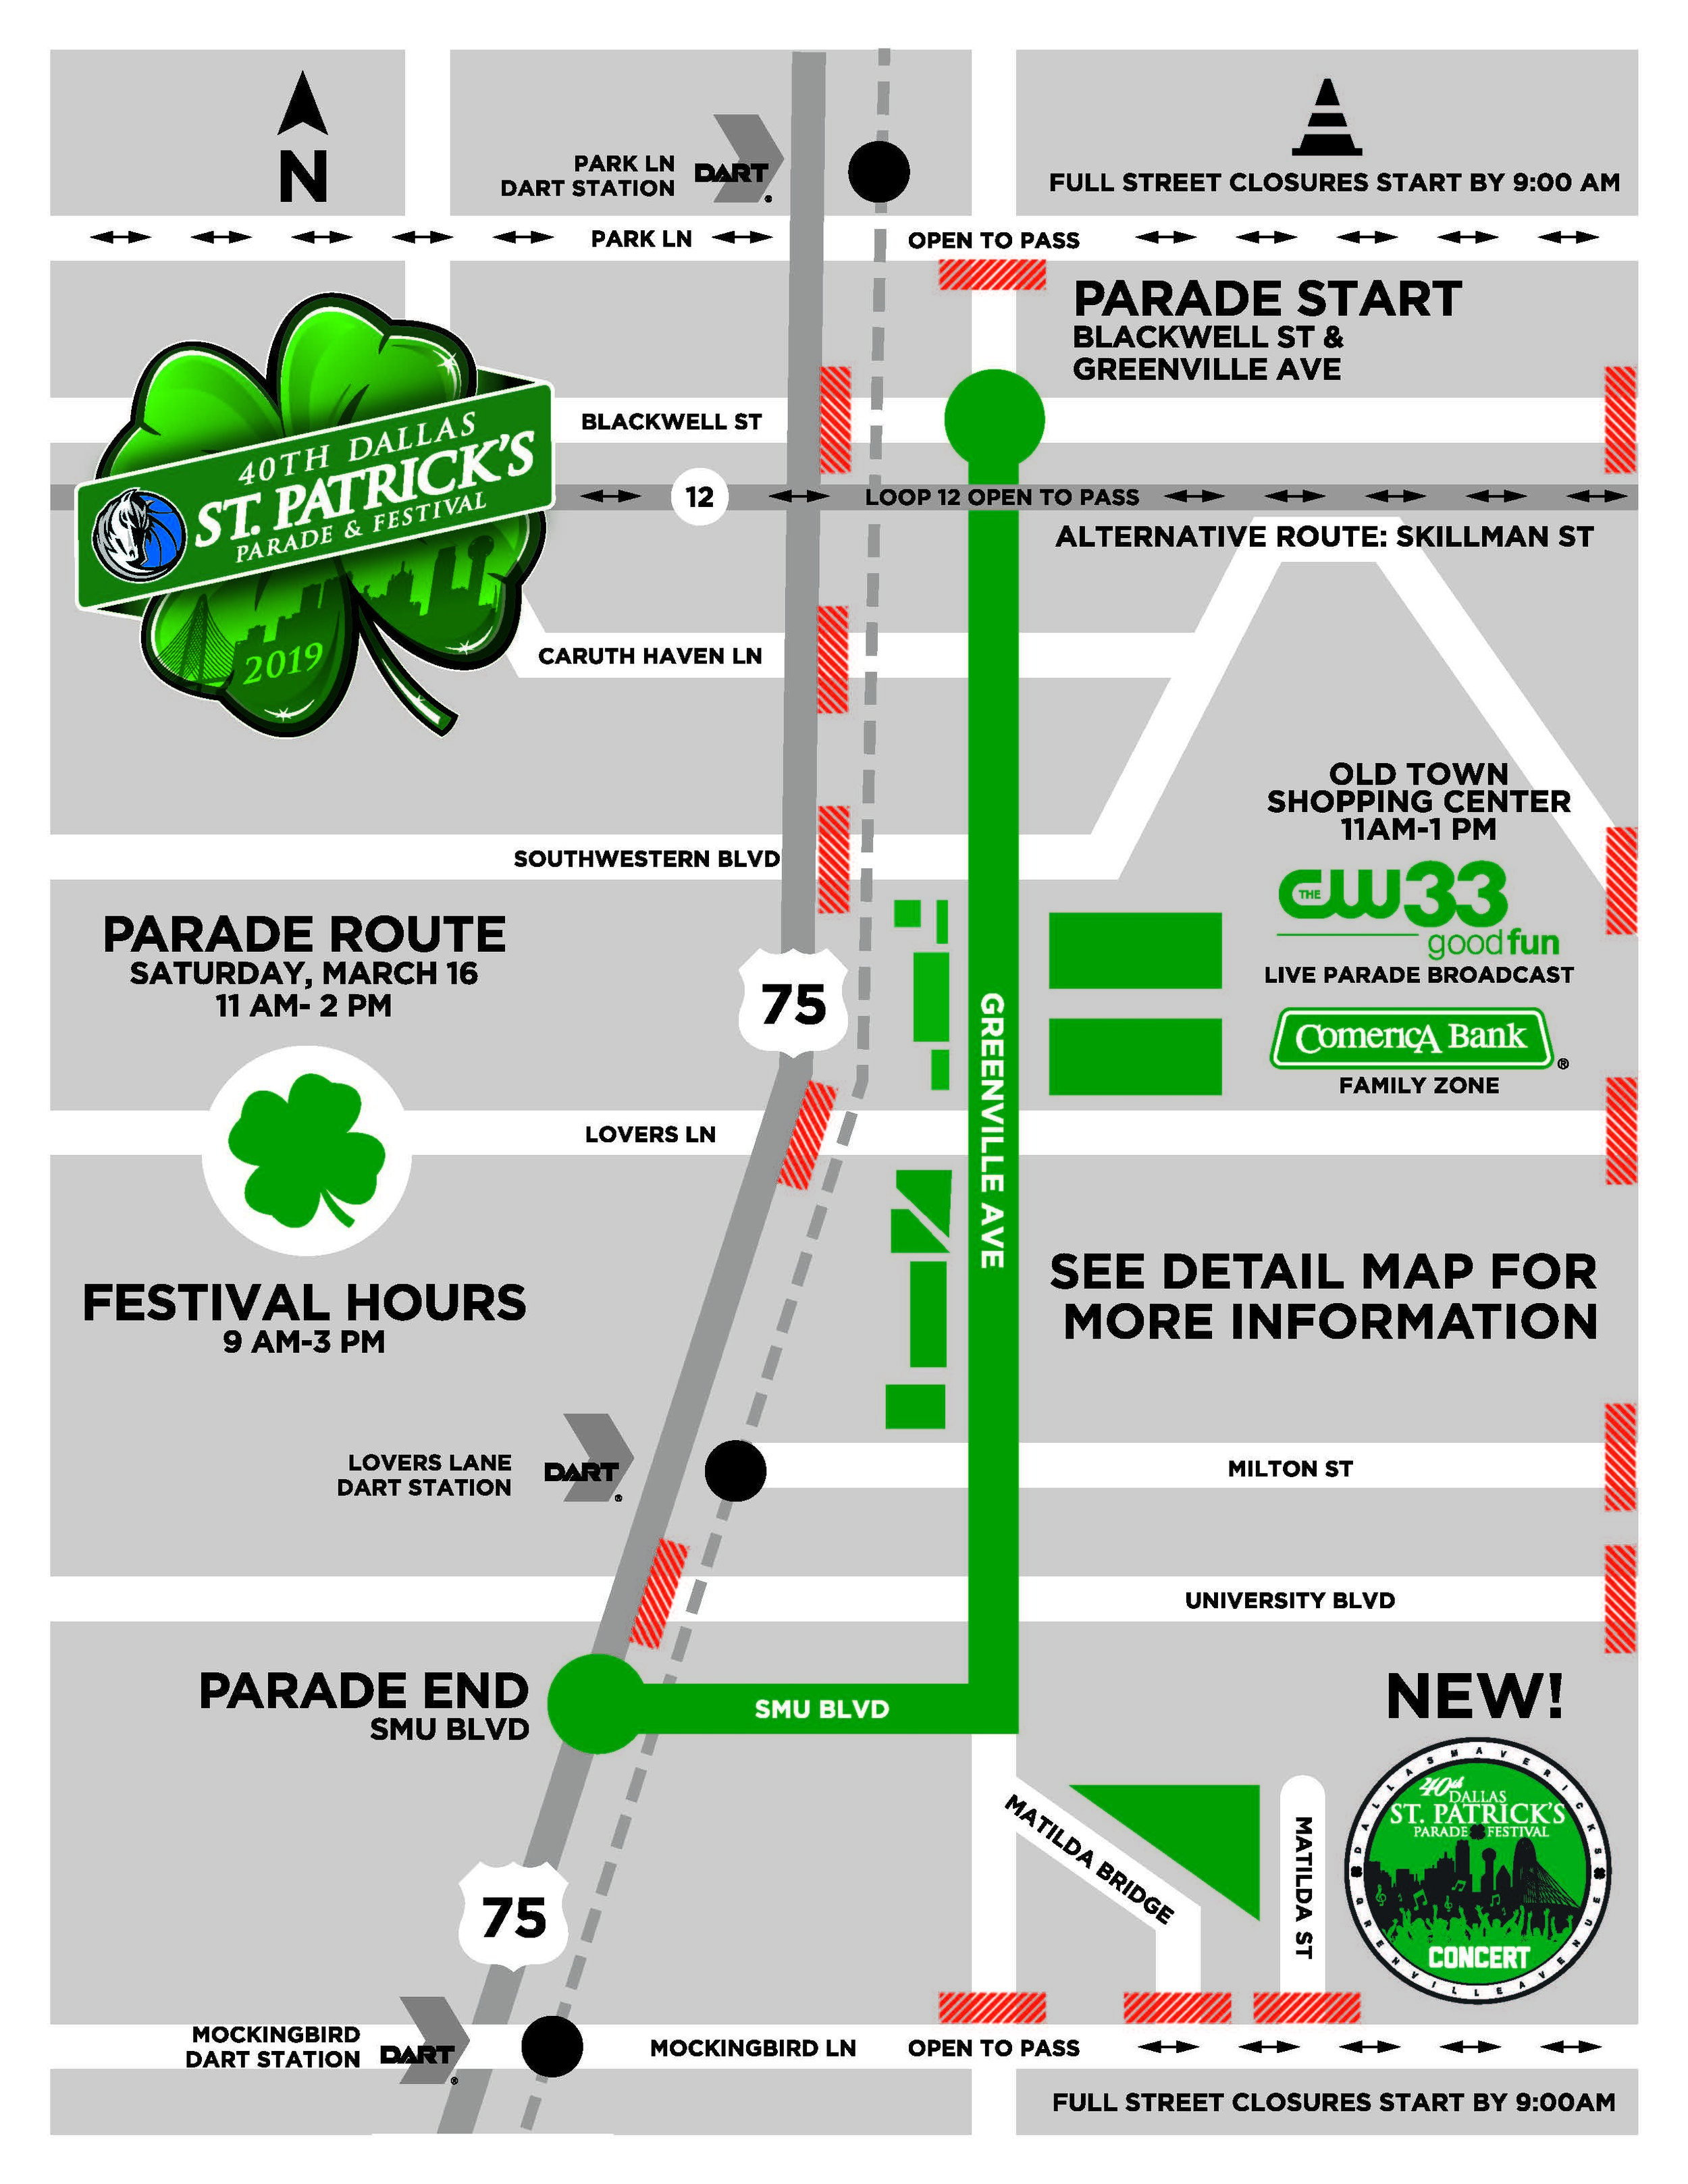 Parade Map & Details - Saturday, March 16th, 2019 – 11:00amStep Off: Greenville @ Blackwell St.Parade End: Yale Blvd/SMU Blvd @ 75 Central Expressway